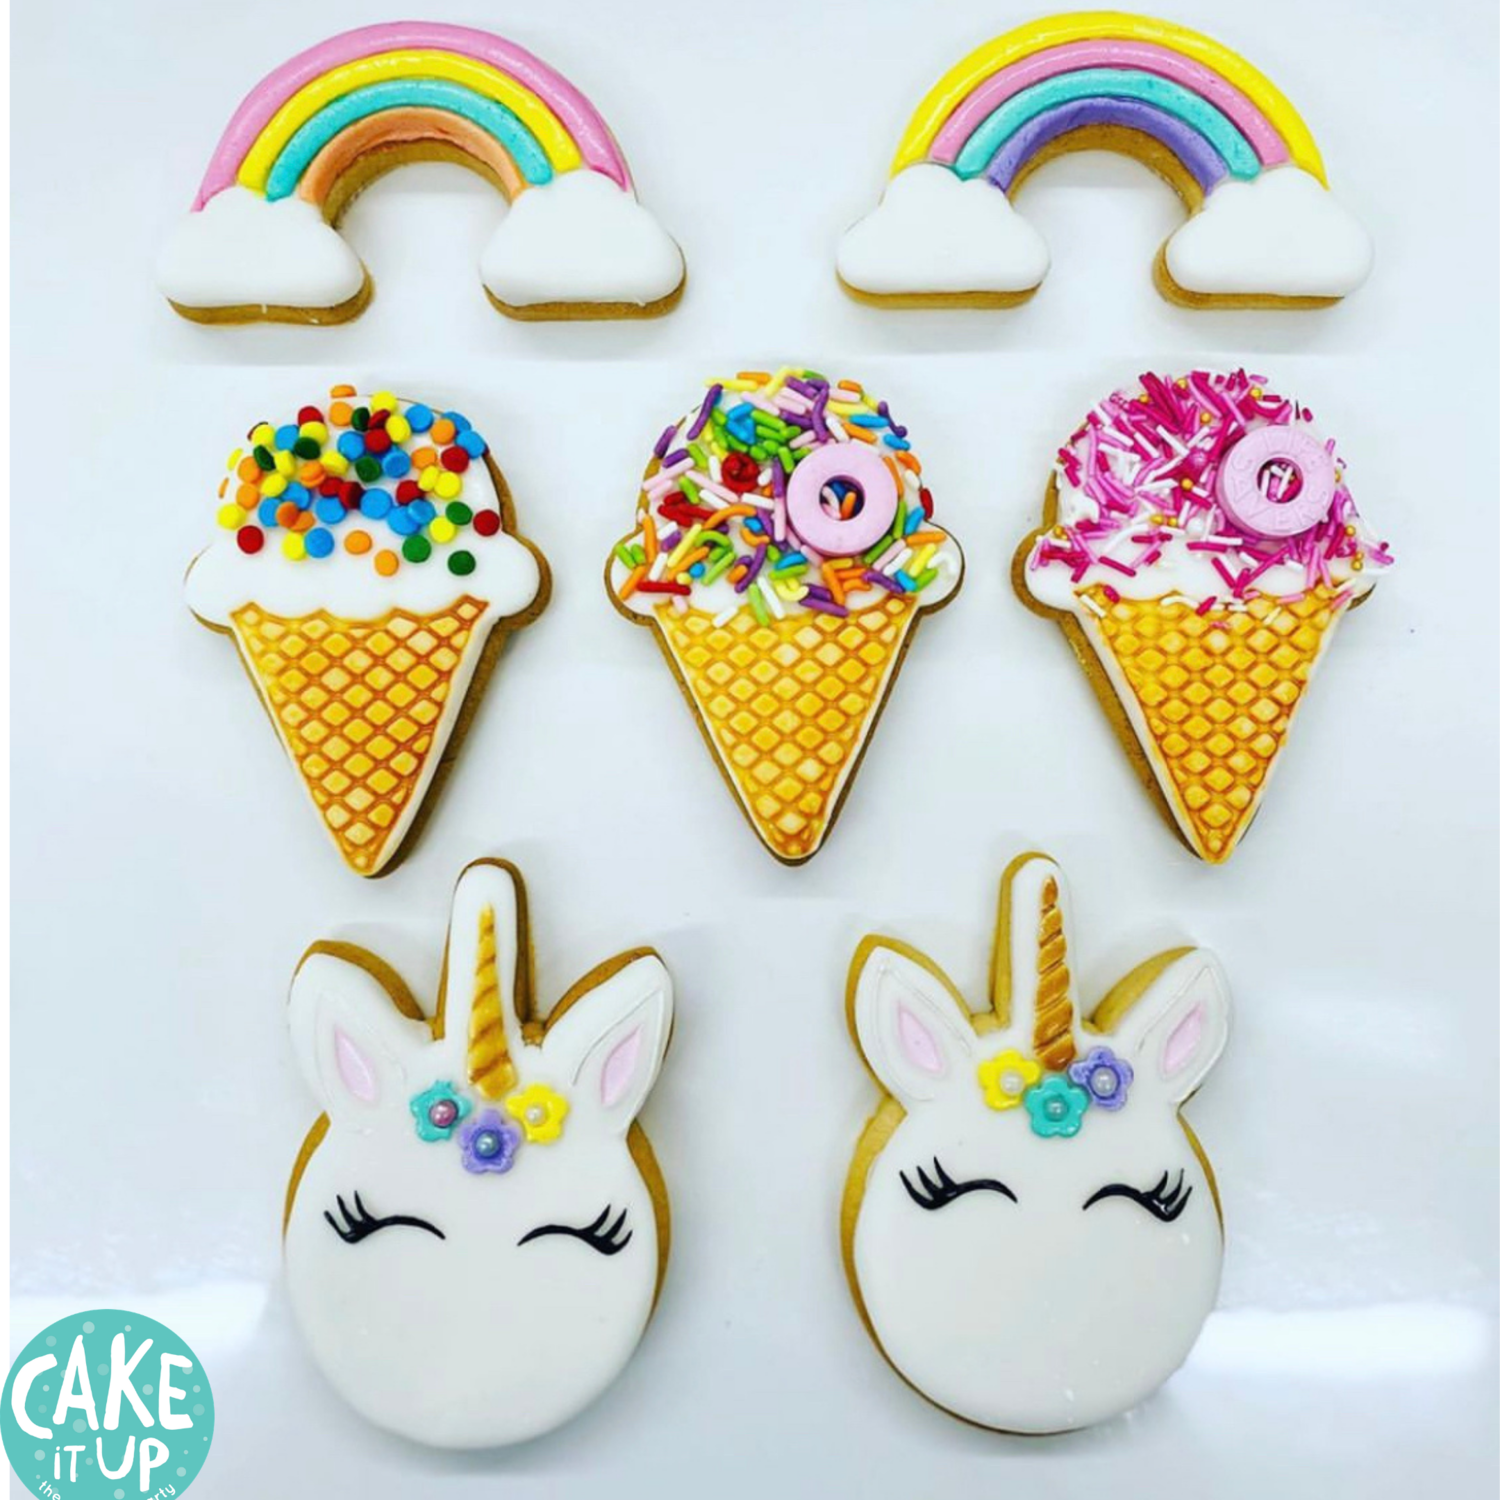 6+ Paint Your Own Cookie Decorating - School Holiday Workshop for Kids -Wednesday 30 September 2020 - 10am to 12pm